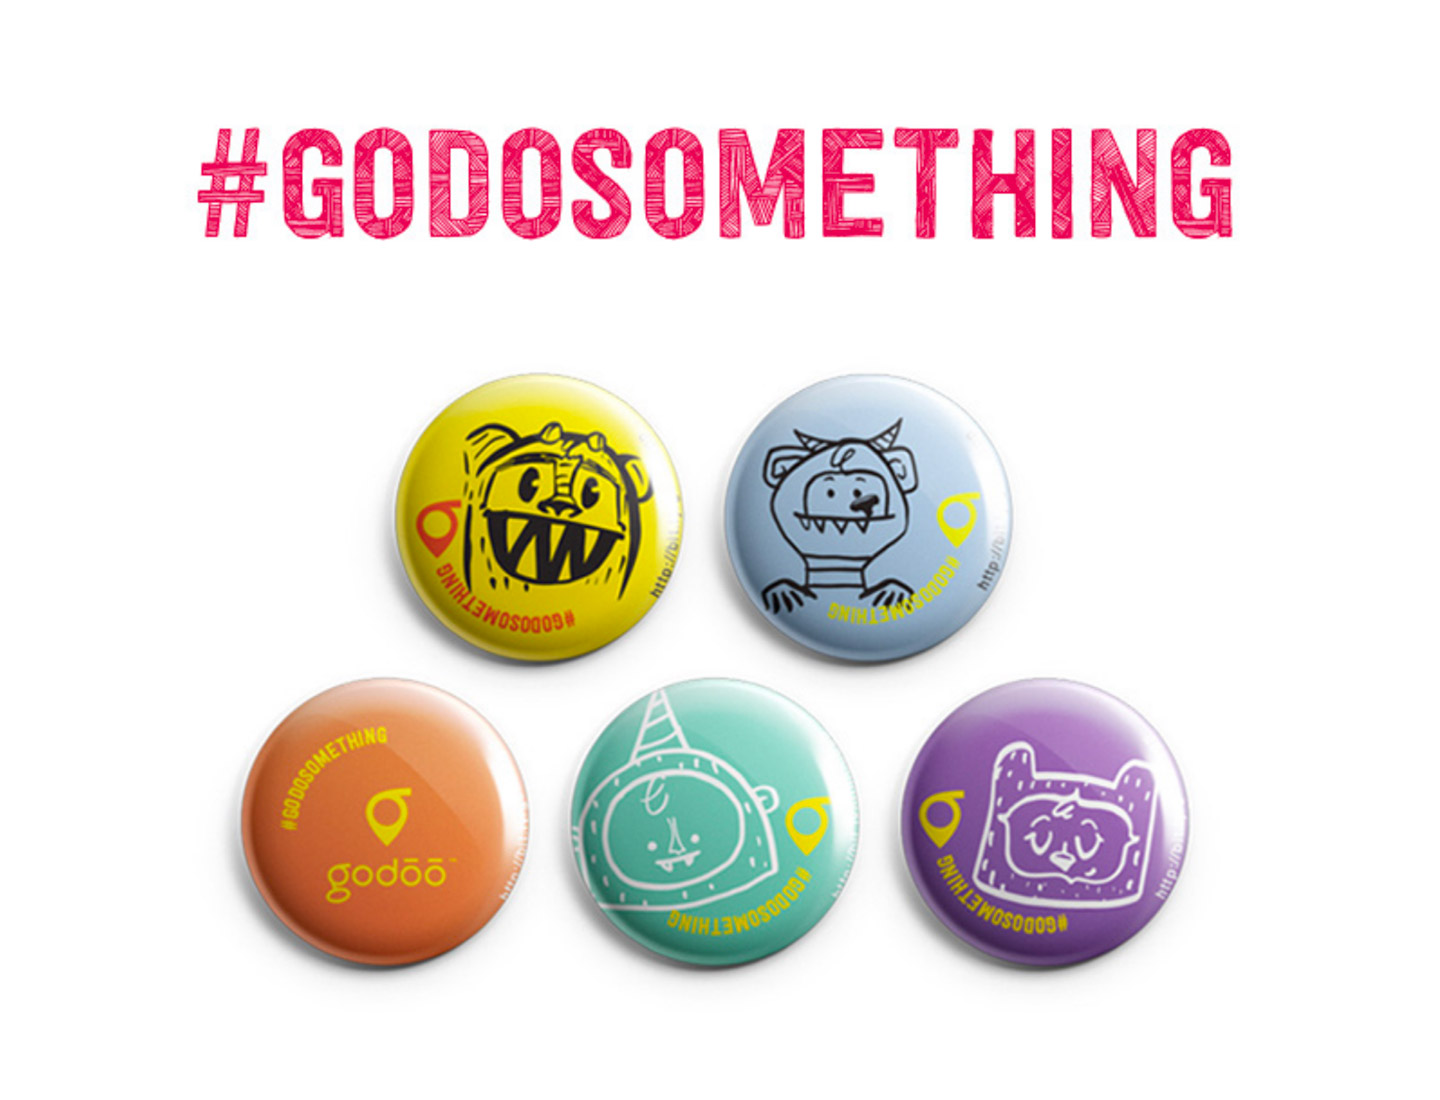 #godosomething hashtag with five colorful buttons featuring cute monster illustrations